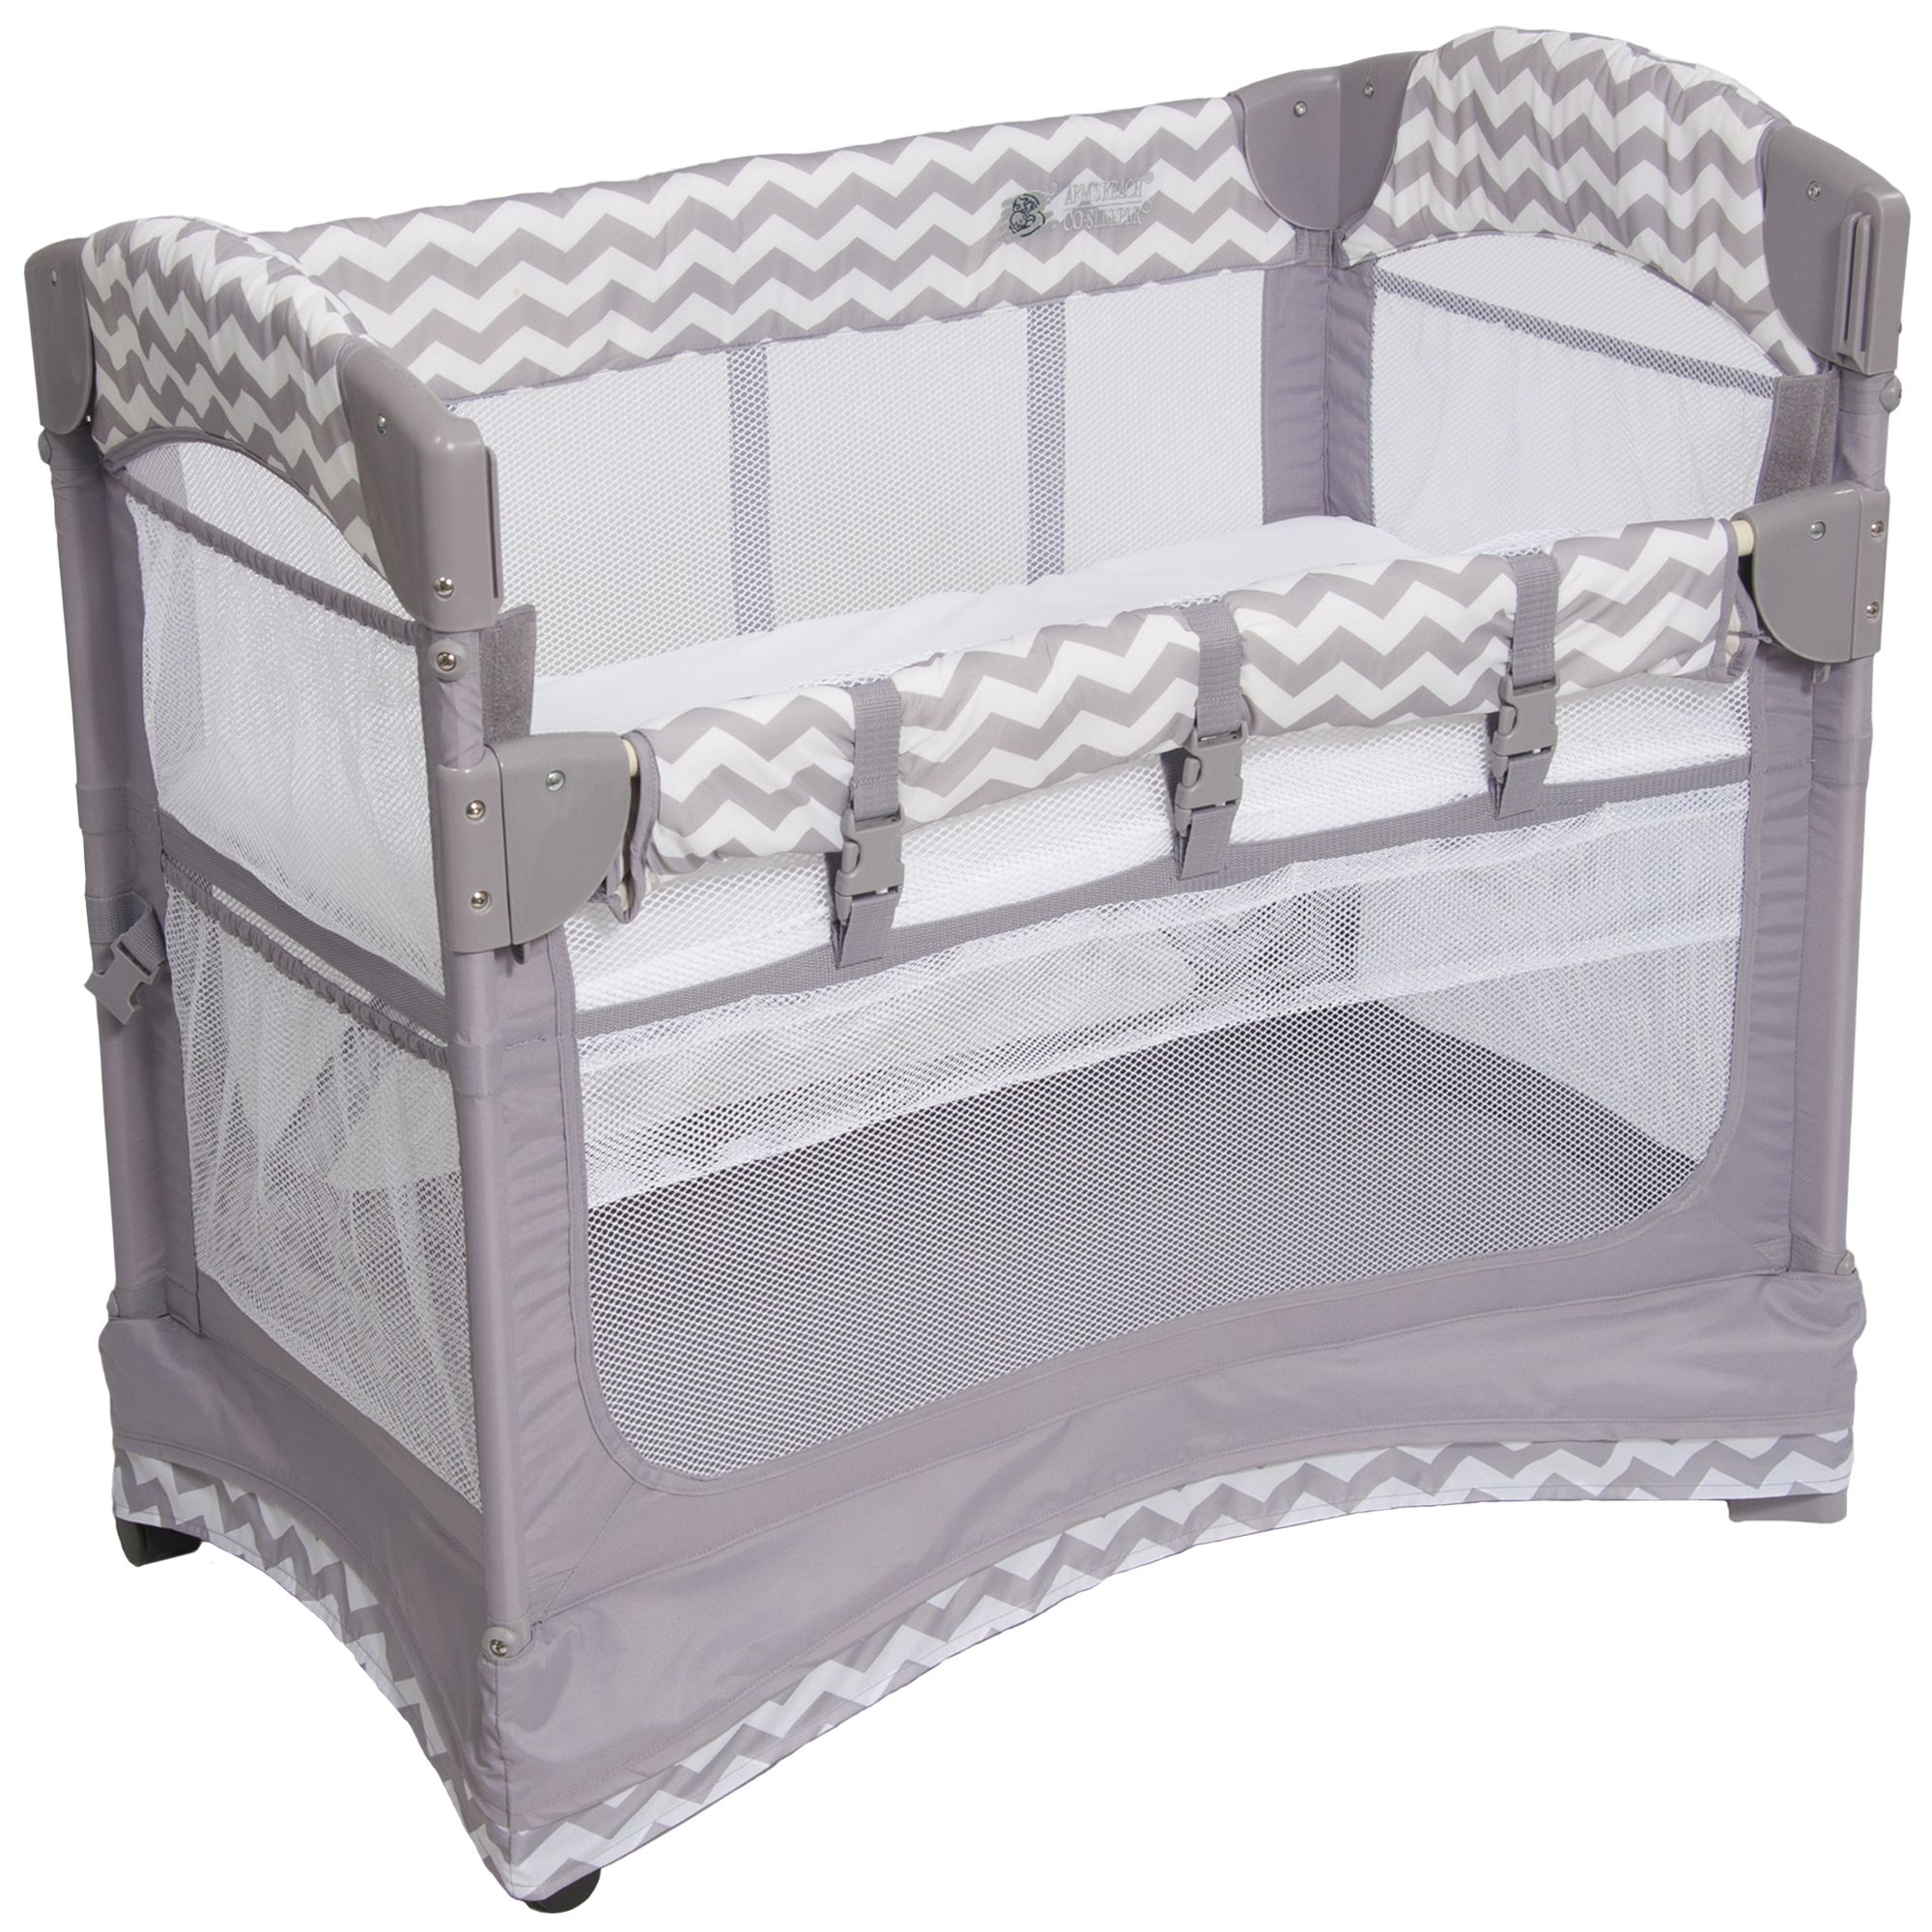 Mini Arc Co Sleeper 17499 New Meant To Strap Right Onto Bed